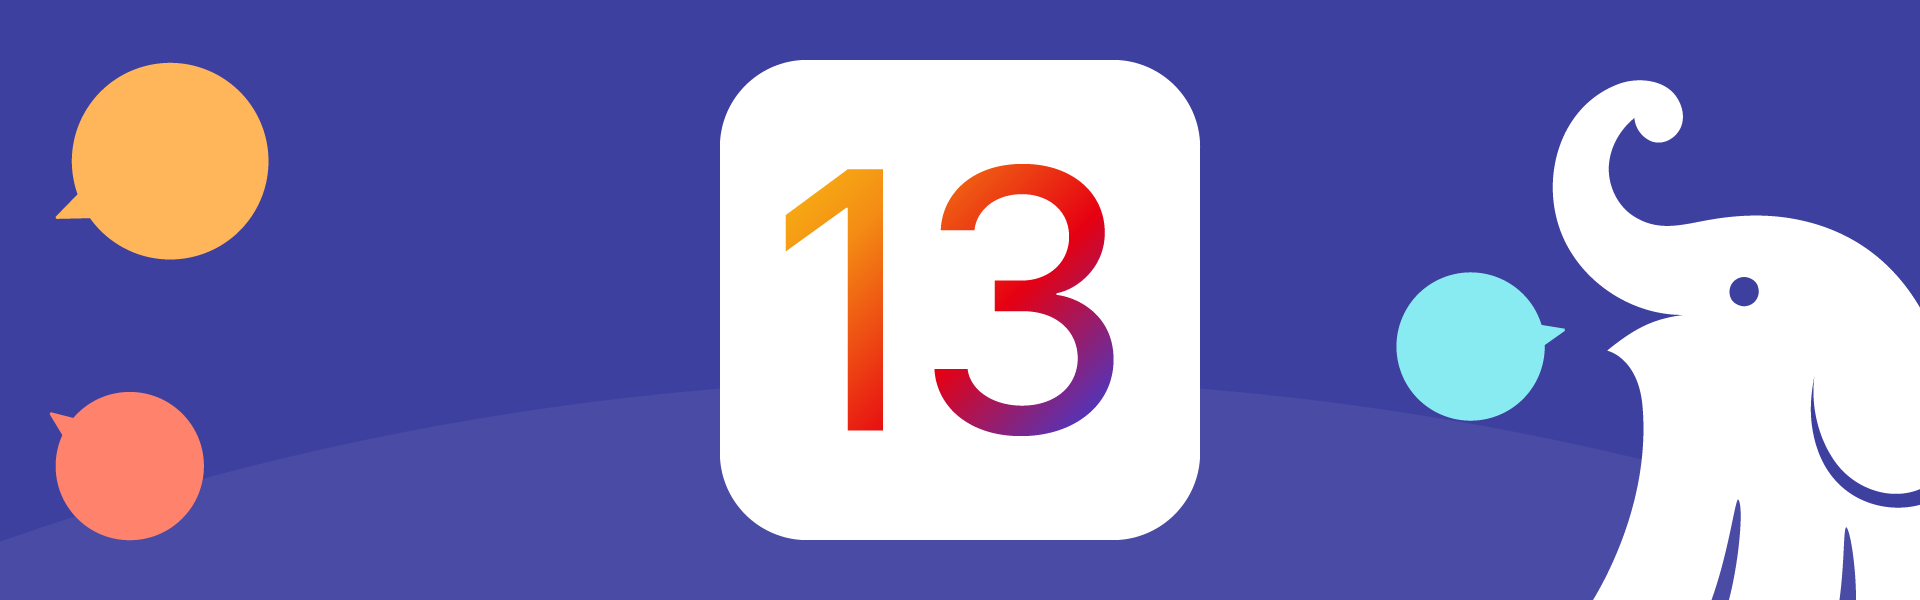 PressRelease iOS13